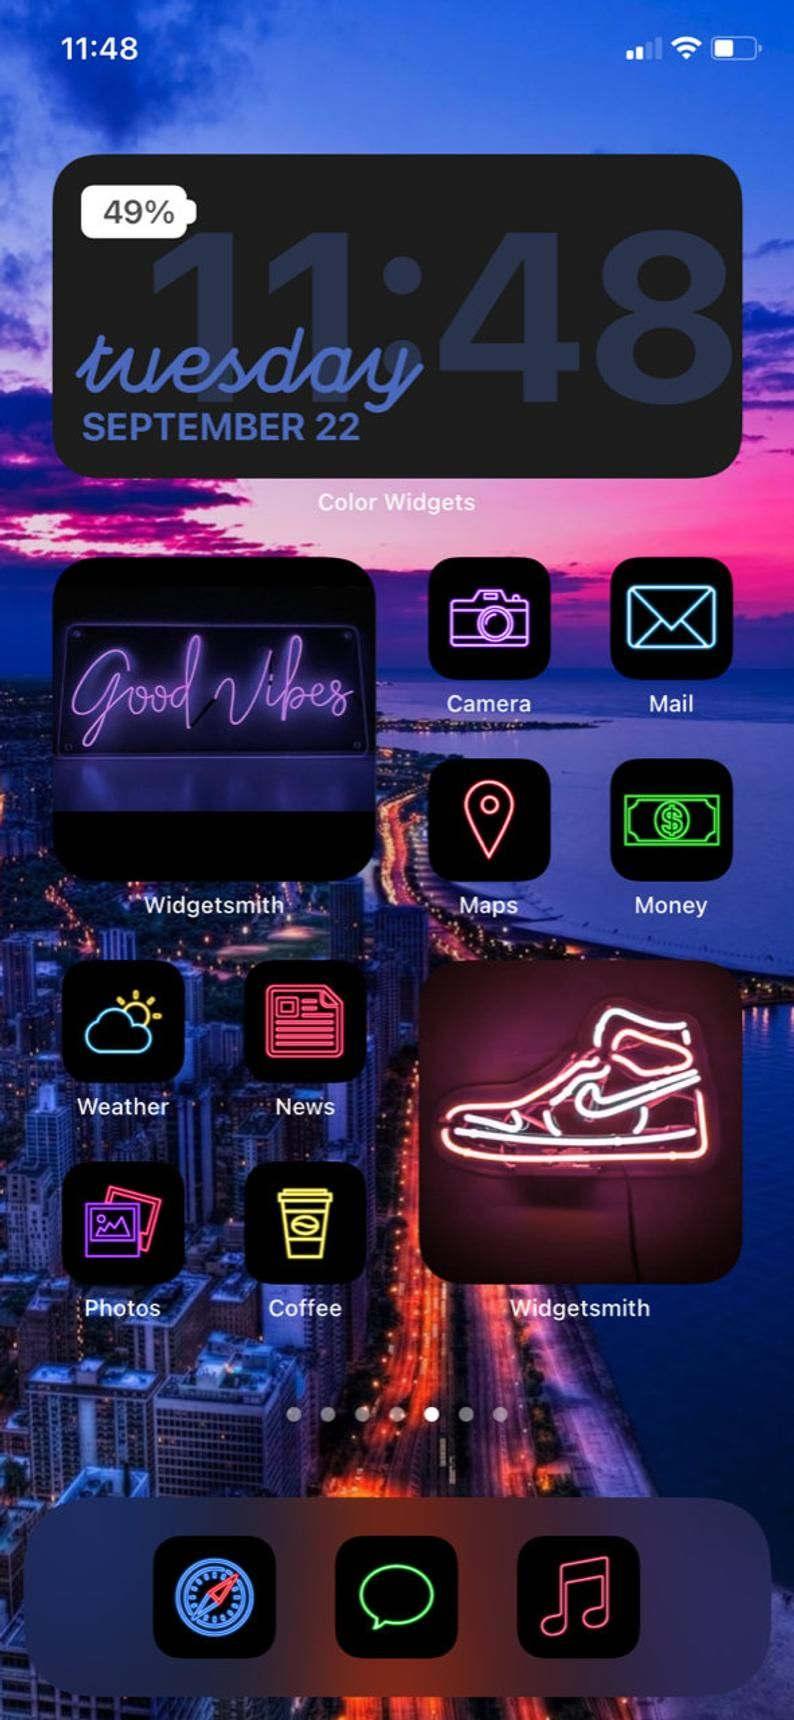 Ios 14 App Icon Pack Neon Aesthetic Ios 14 Icons Iphone Icon Pack Neon 50 Pack App Icons In 2020 App Icon Iphone Home Screen Layout Iphone Design